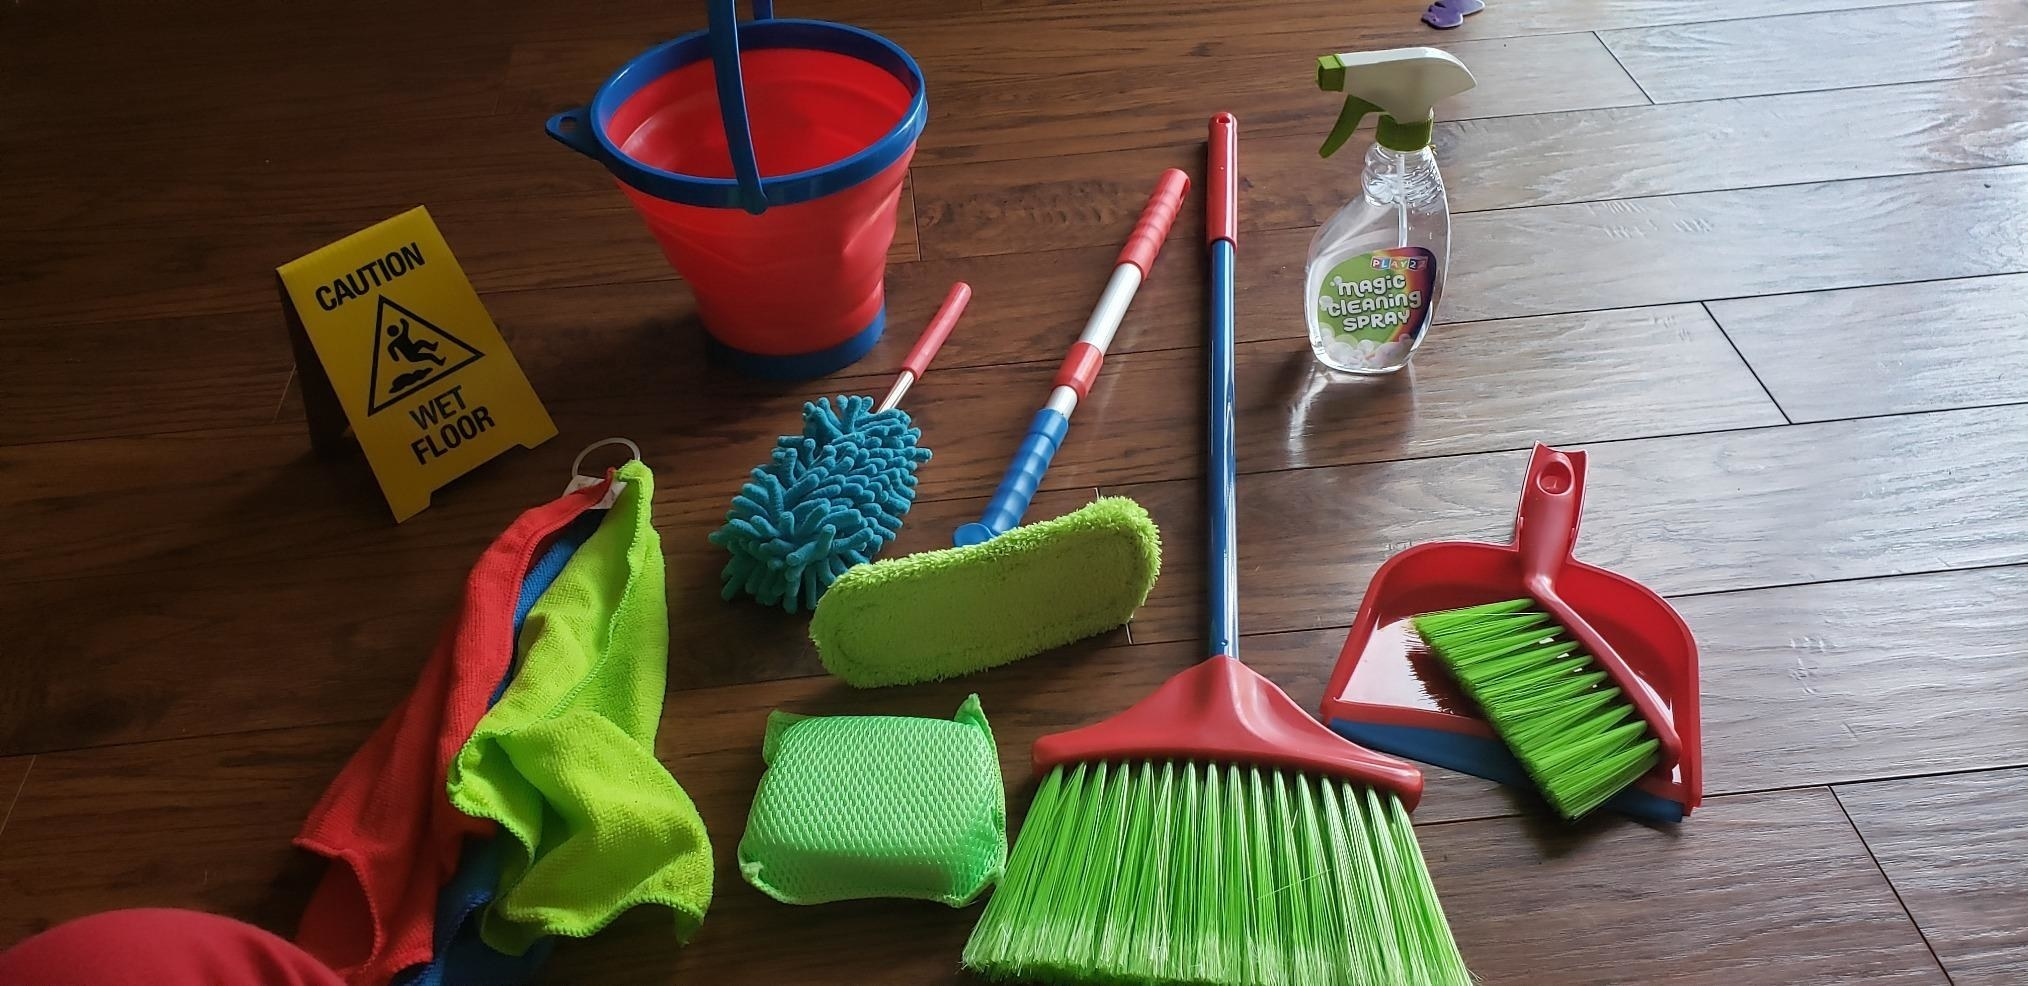 a reviewer's image of the full cleaning set